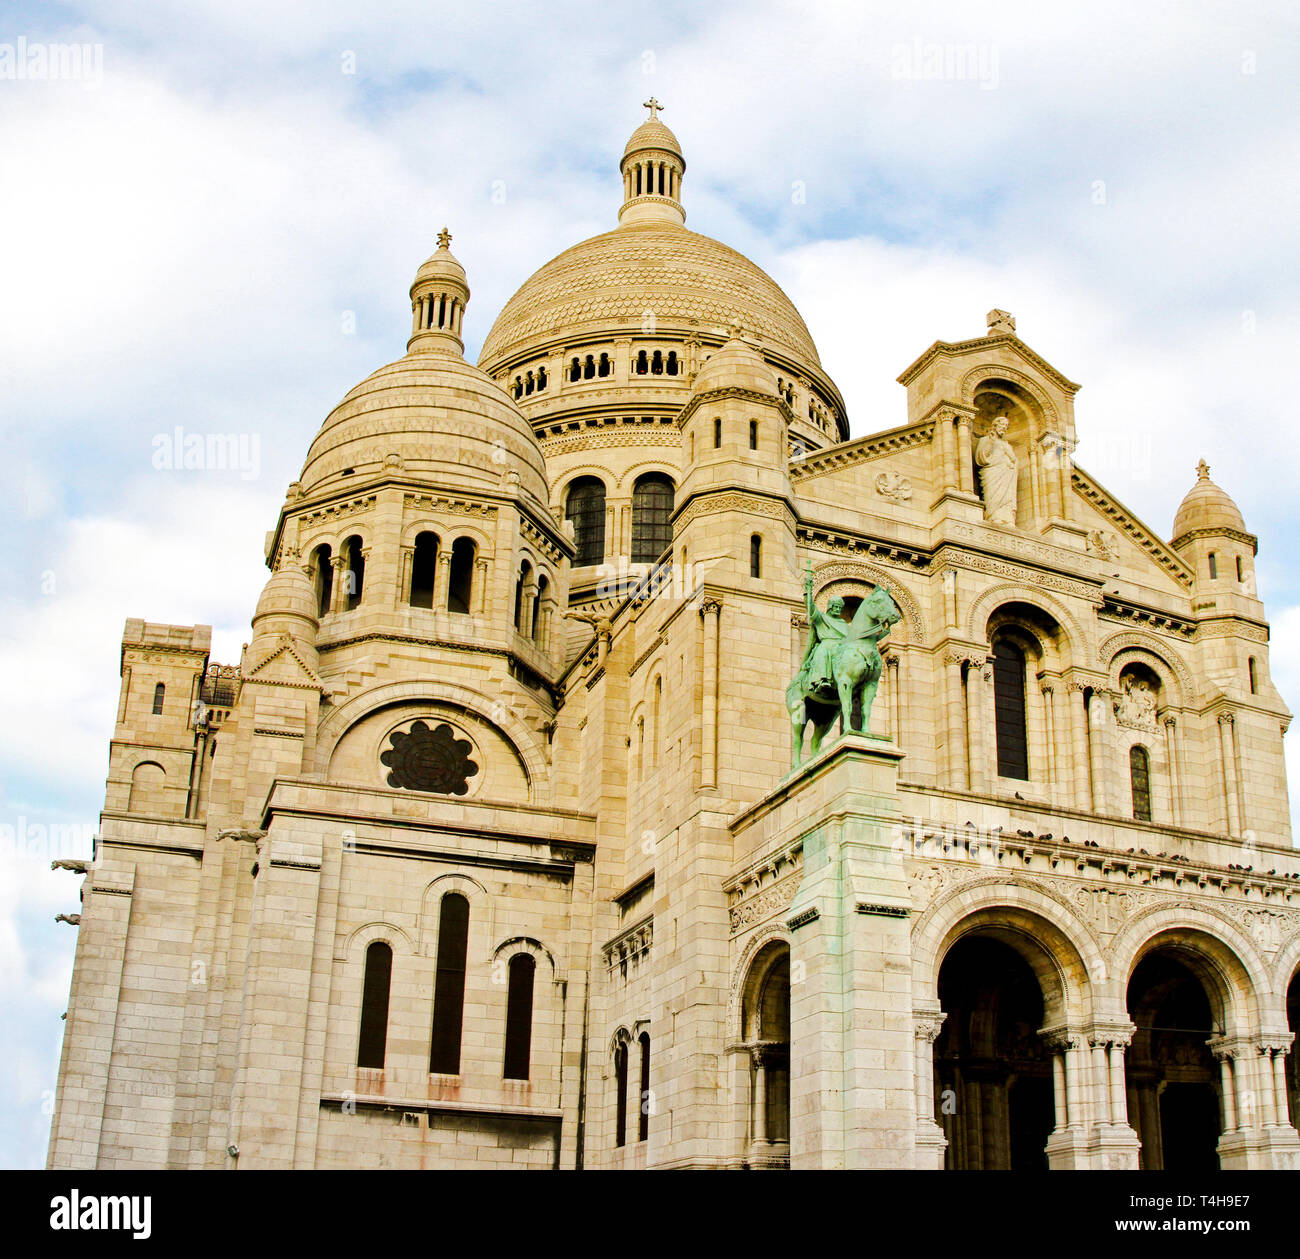 Basilica of the Sacred Heart of Jesus of Paris - Stock Image